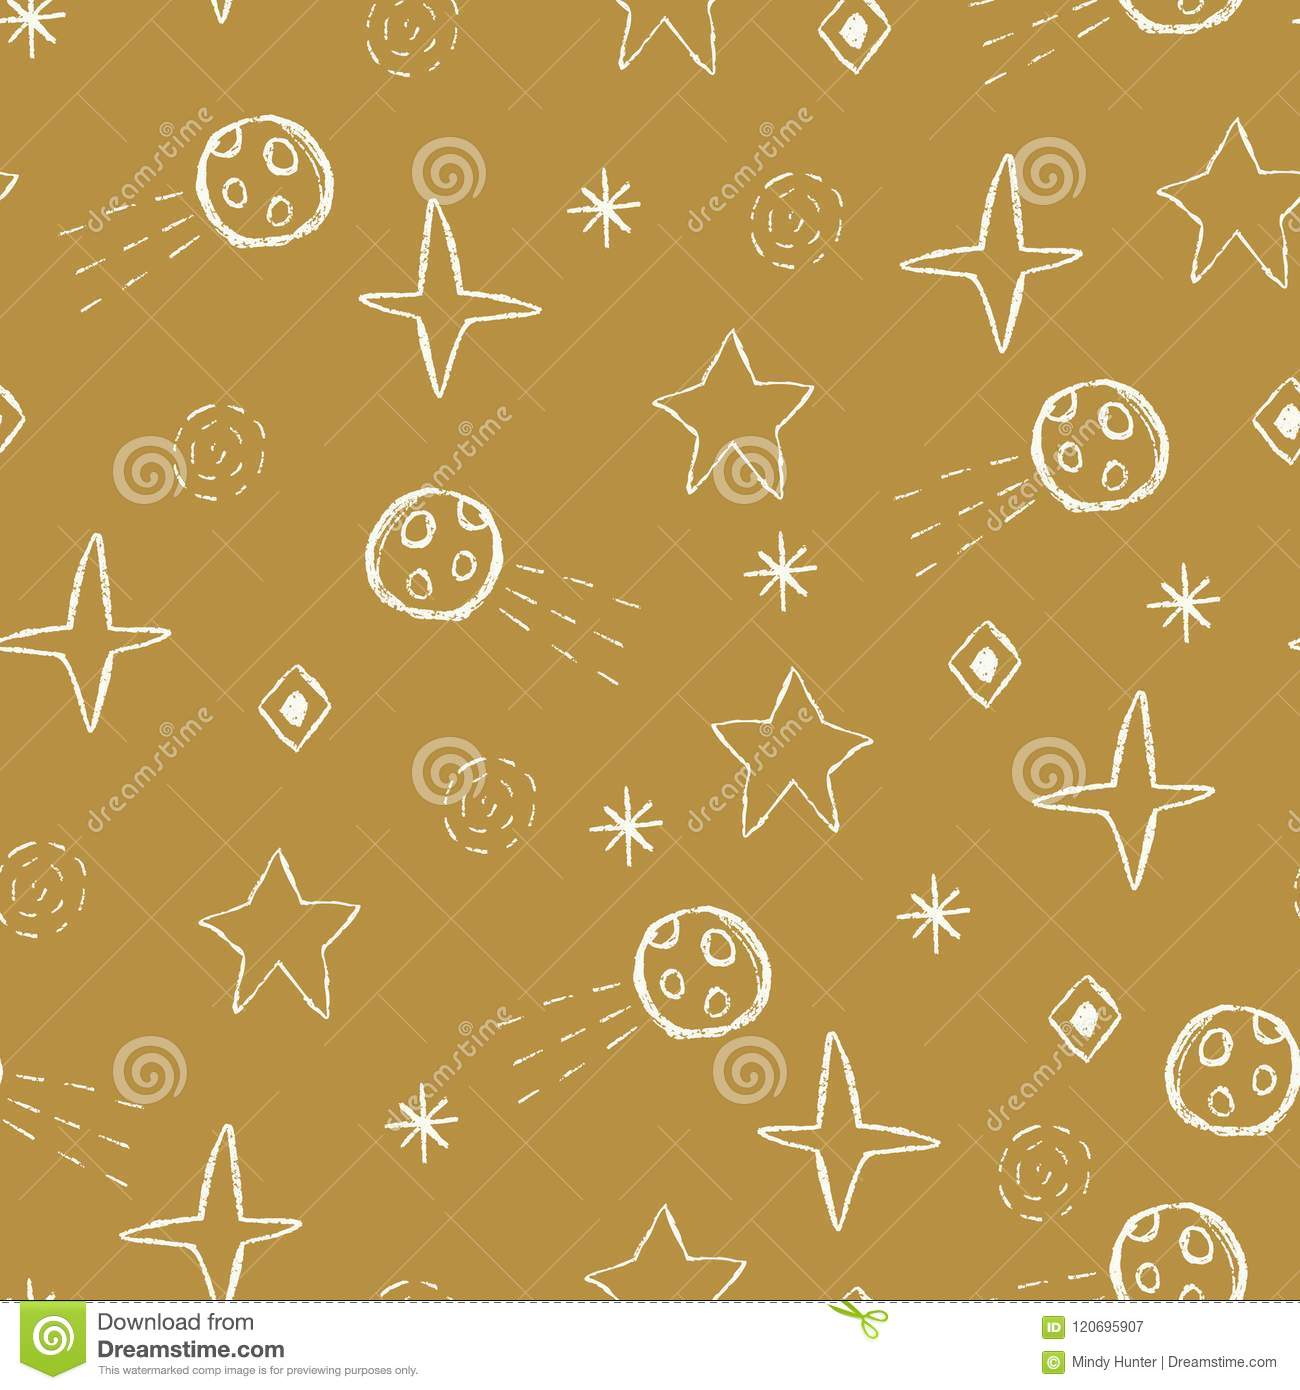 Vector space doodles,stars, comets, asteroids seamless repeat pattern